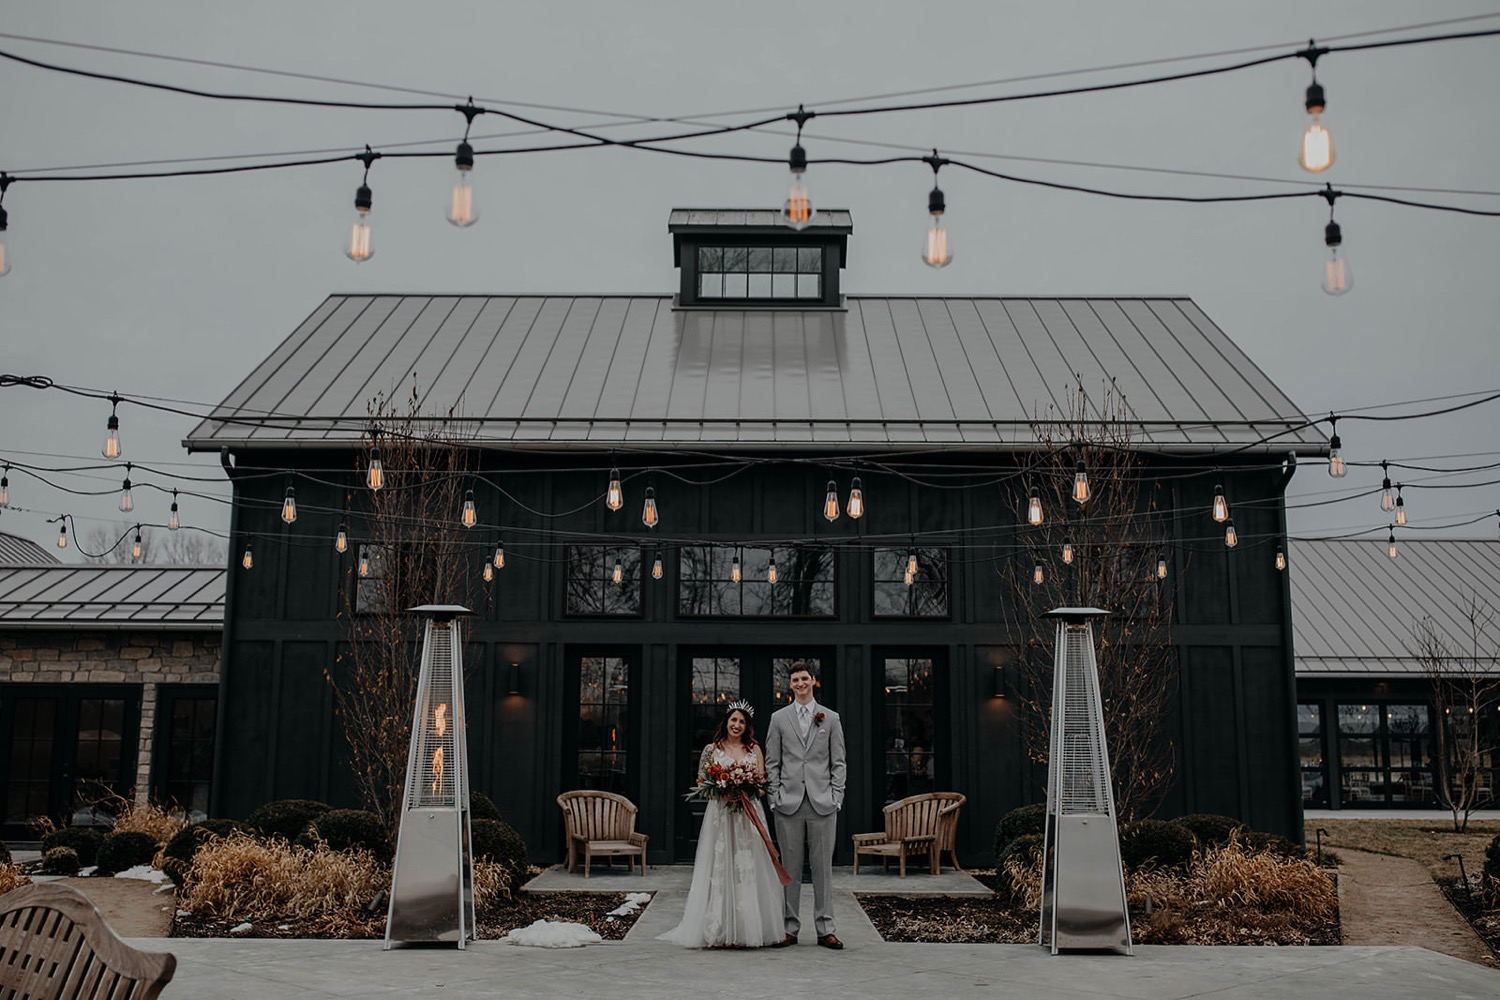 witchy-winter-wedding-bre-smo-at-oak-grove-jorgensen-farm-wedding-columbus-ohio-grace-e-jones-photography262_1500.jpg